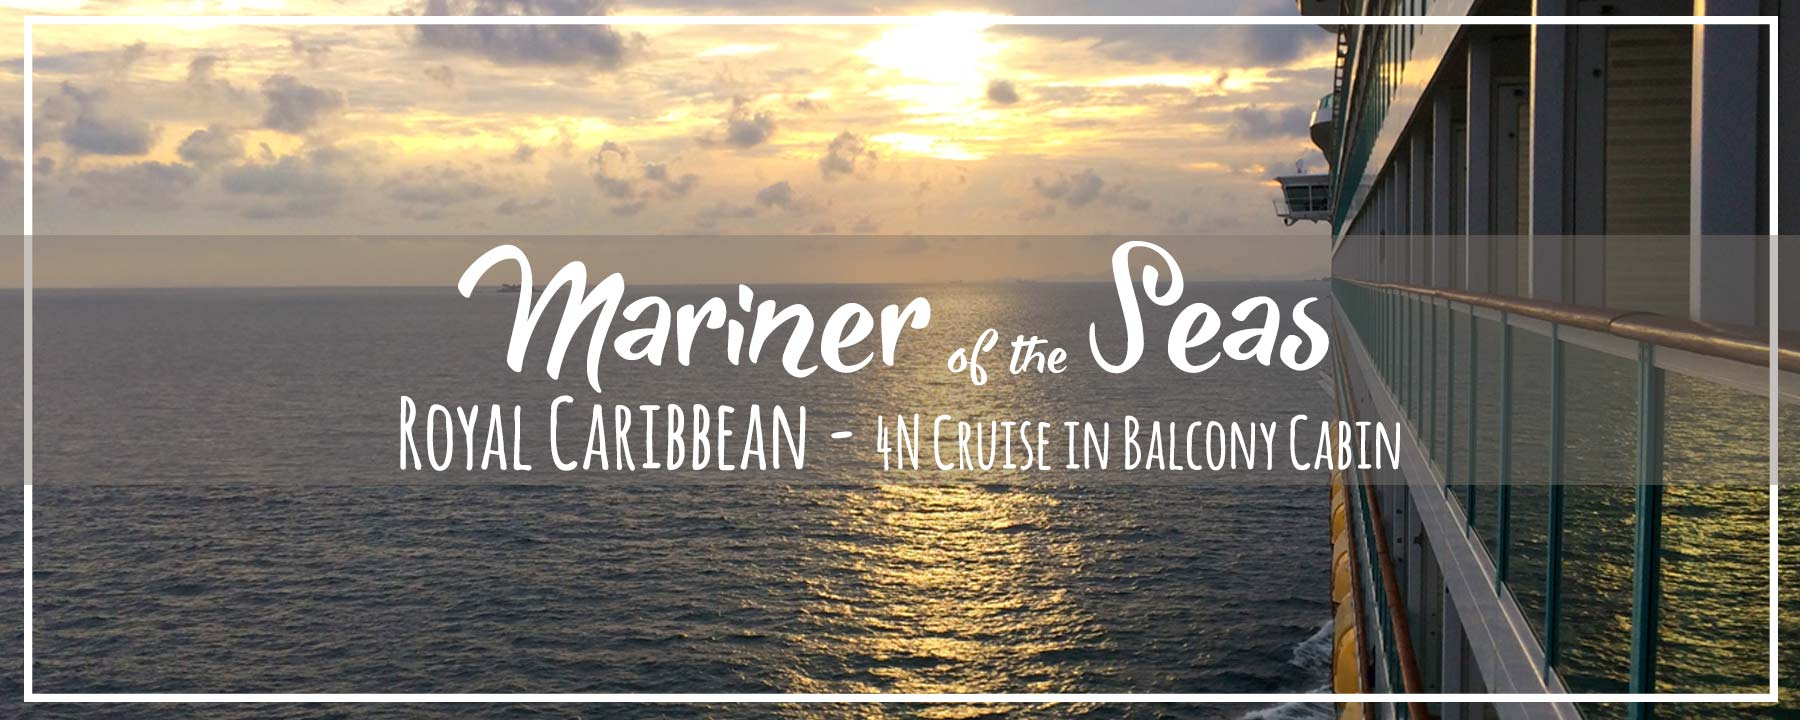 Royal Caribbean Mariner of the Seas | Tips for 4N Cruise in Balcony Cabin